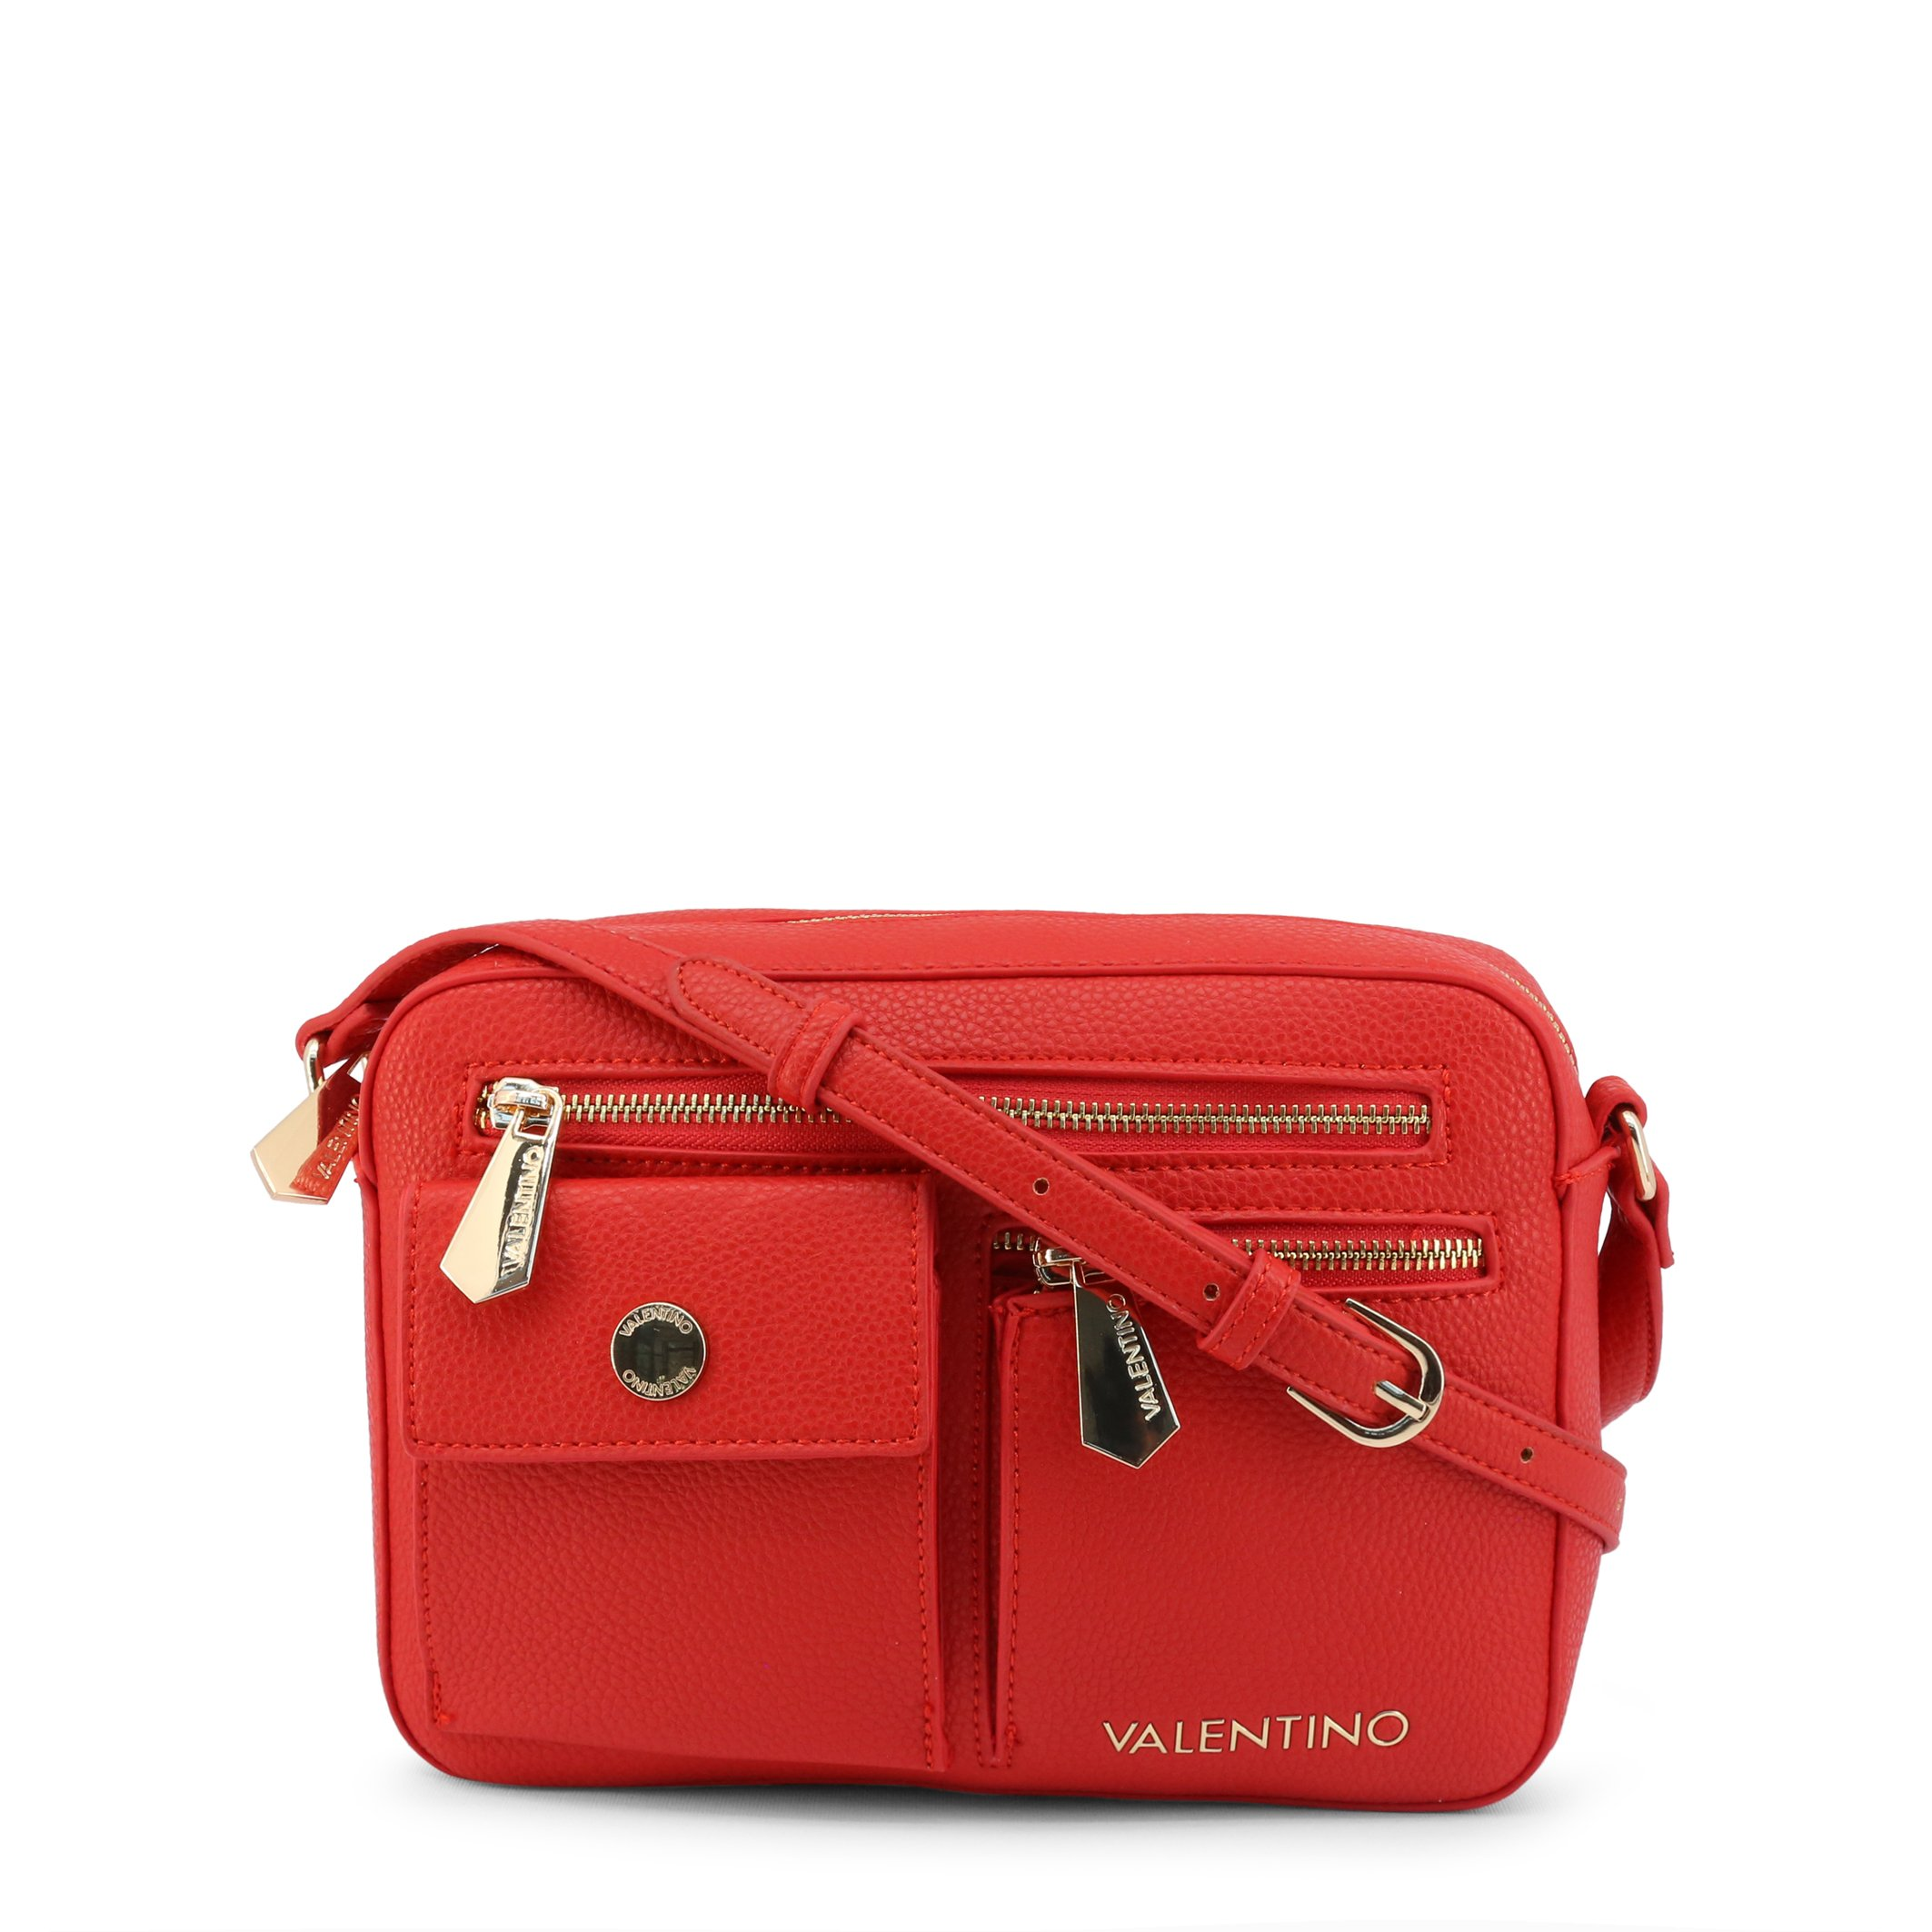 Valentino by Mario Valentino Women's Clutch Bag Various Colours CASPER-VBS3XL03 - red NOSIZE